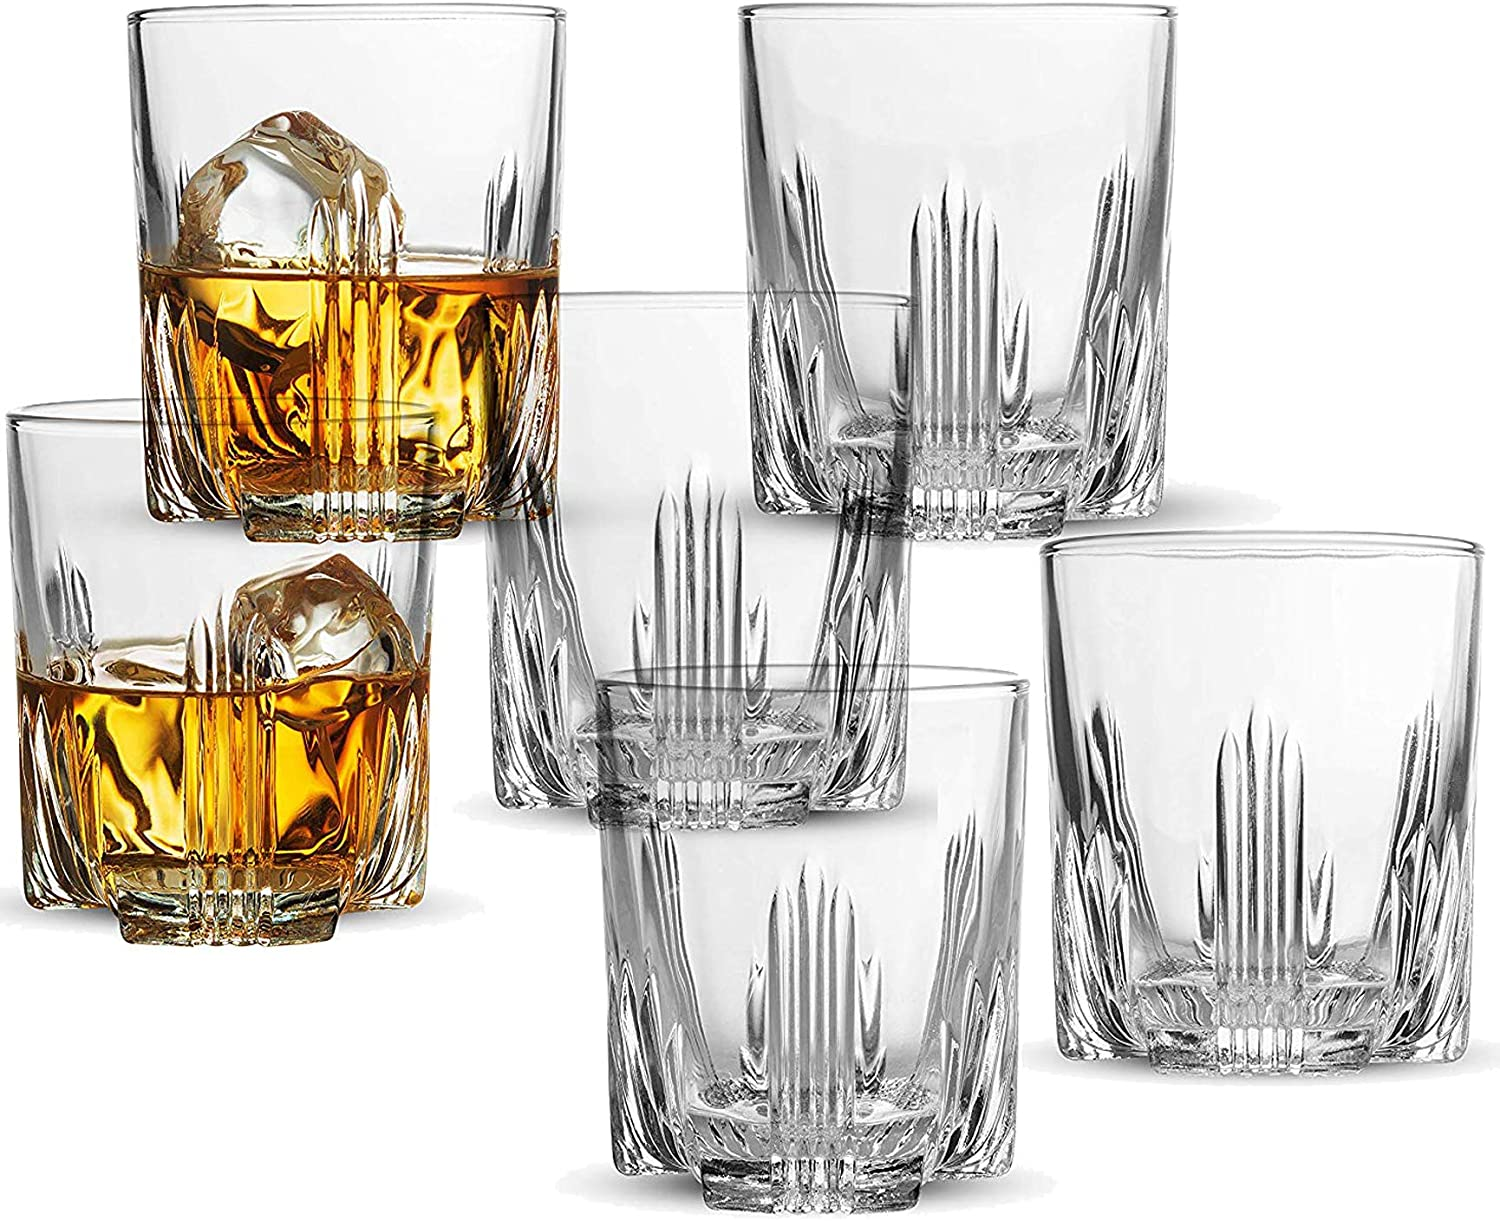 Amazon Com Whiskey Glass Set Italian Crafted Whiskey Glasses 6 Piece Exquisite Cocktail Glasses For Whiskey Bourbon Scotch Cocktails Alcohol Etc 9 5 Oz Drinking Glasses 6 Whiskey Glasses Liquor Decanters